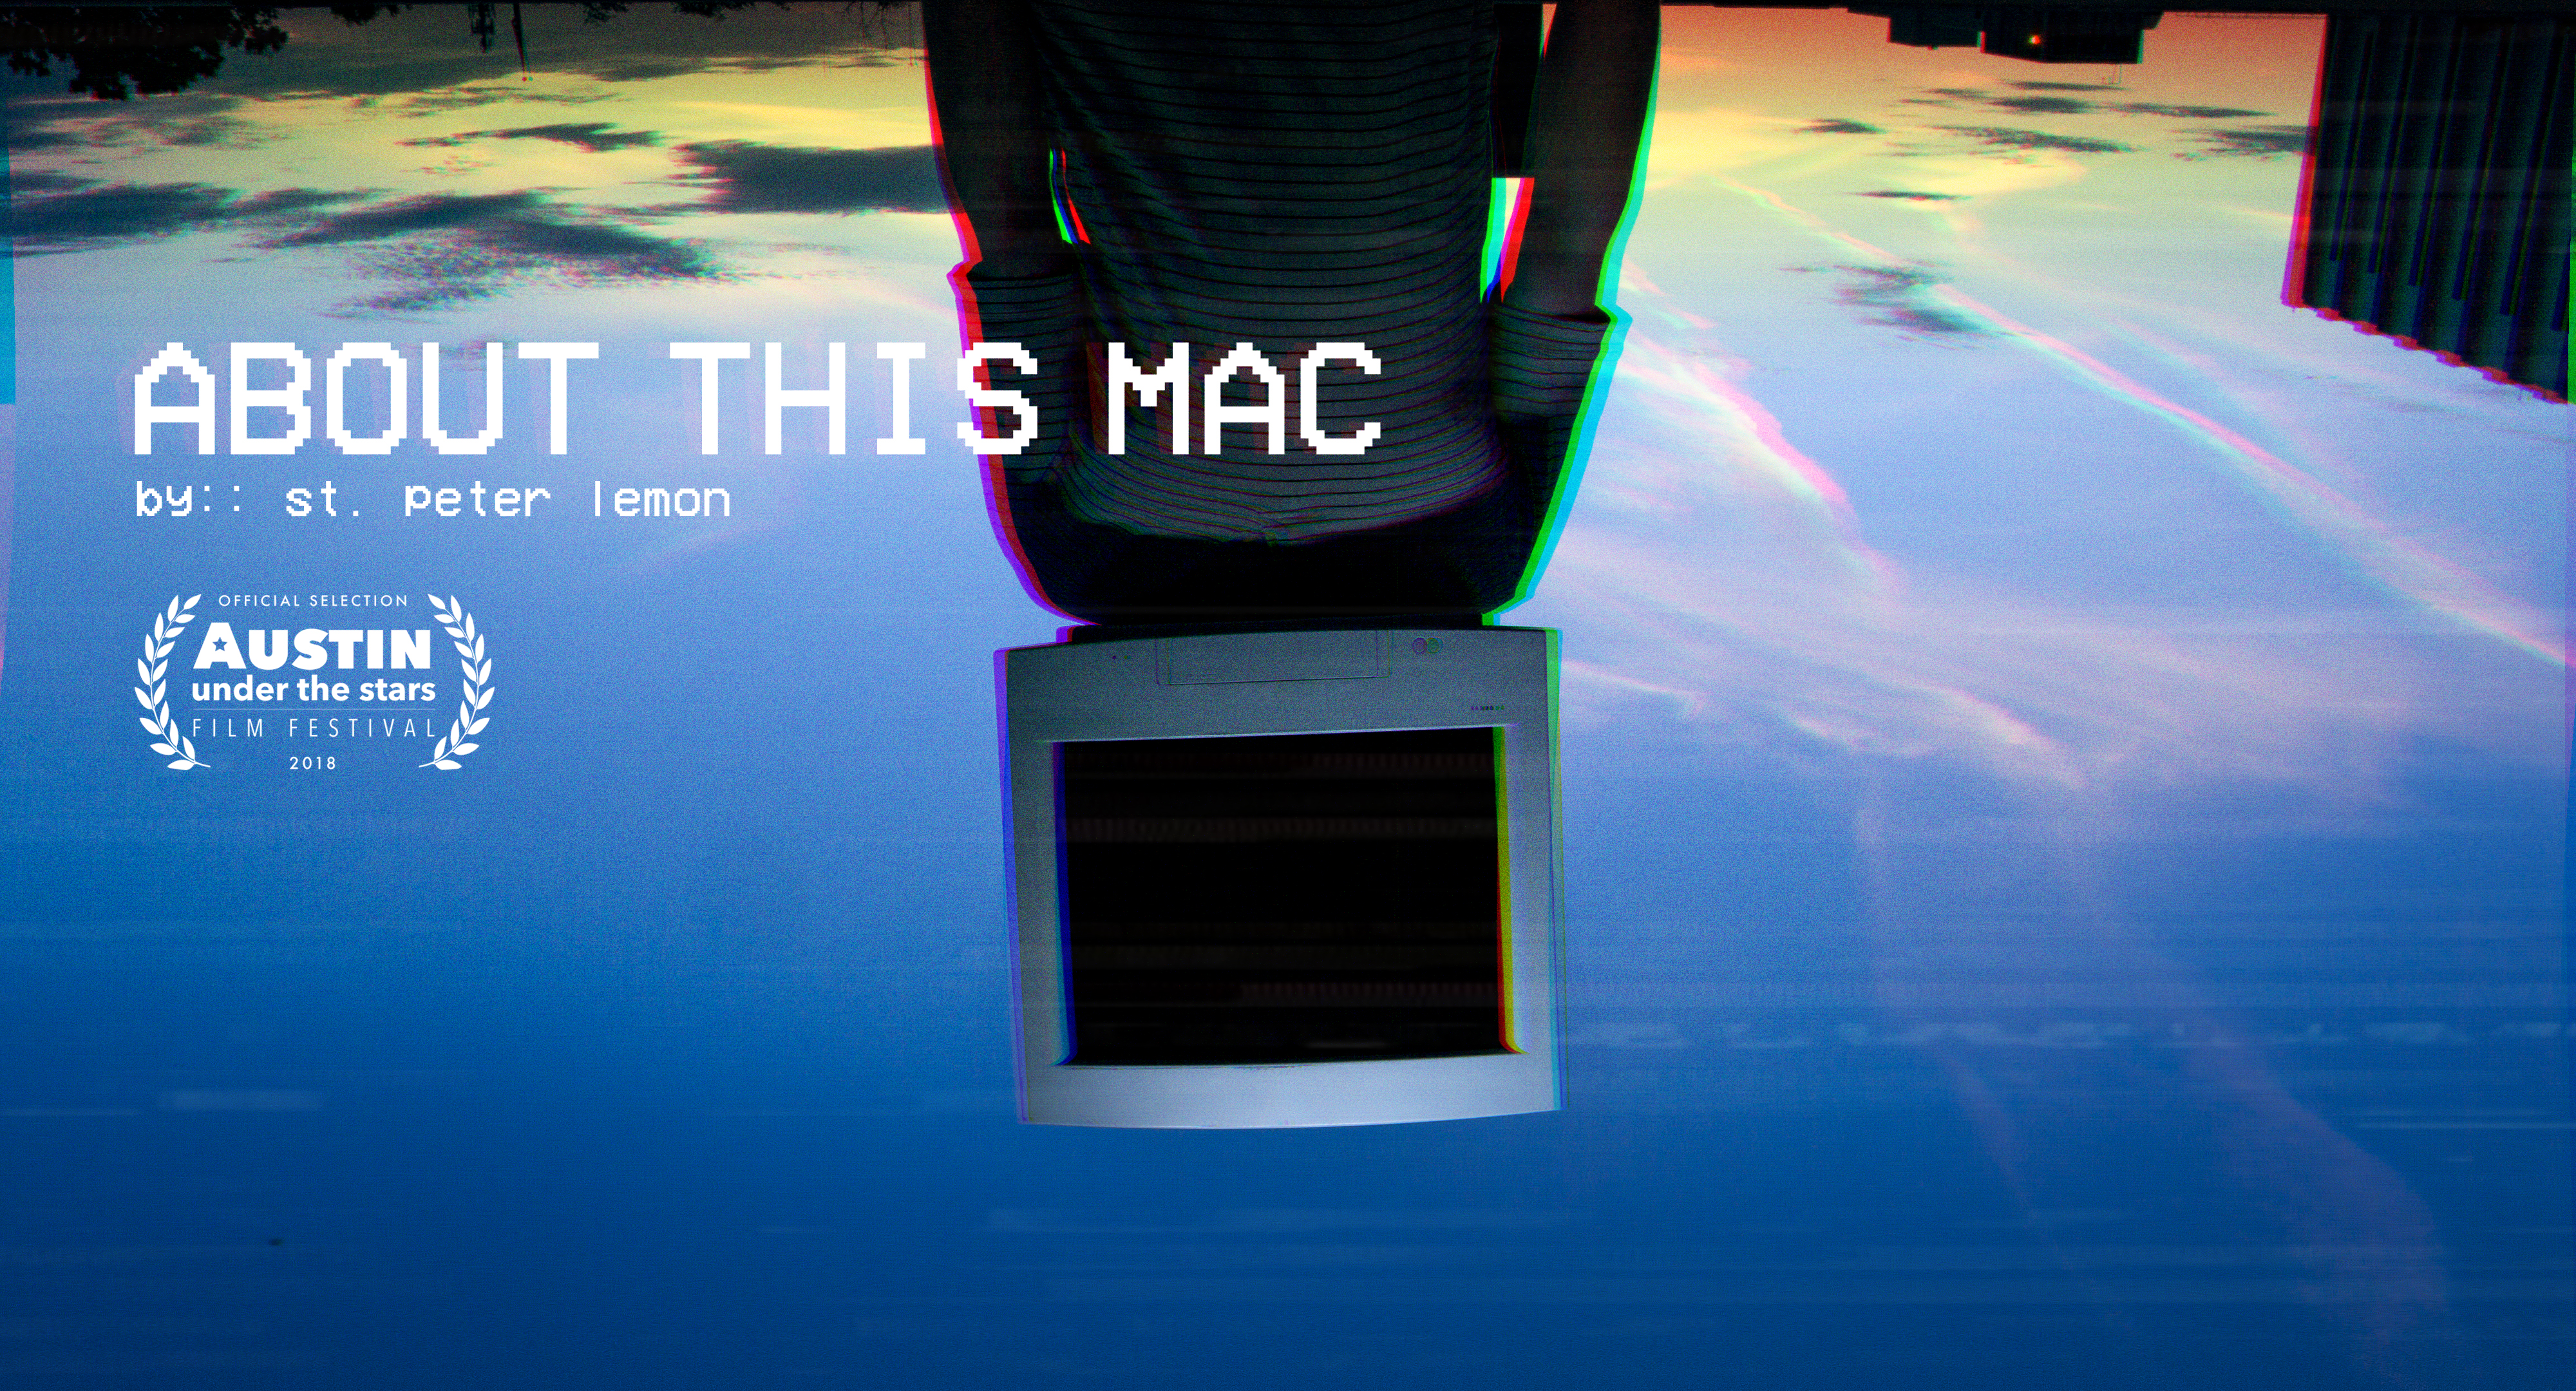 About This Mac_Poster